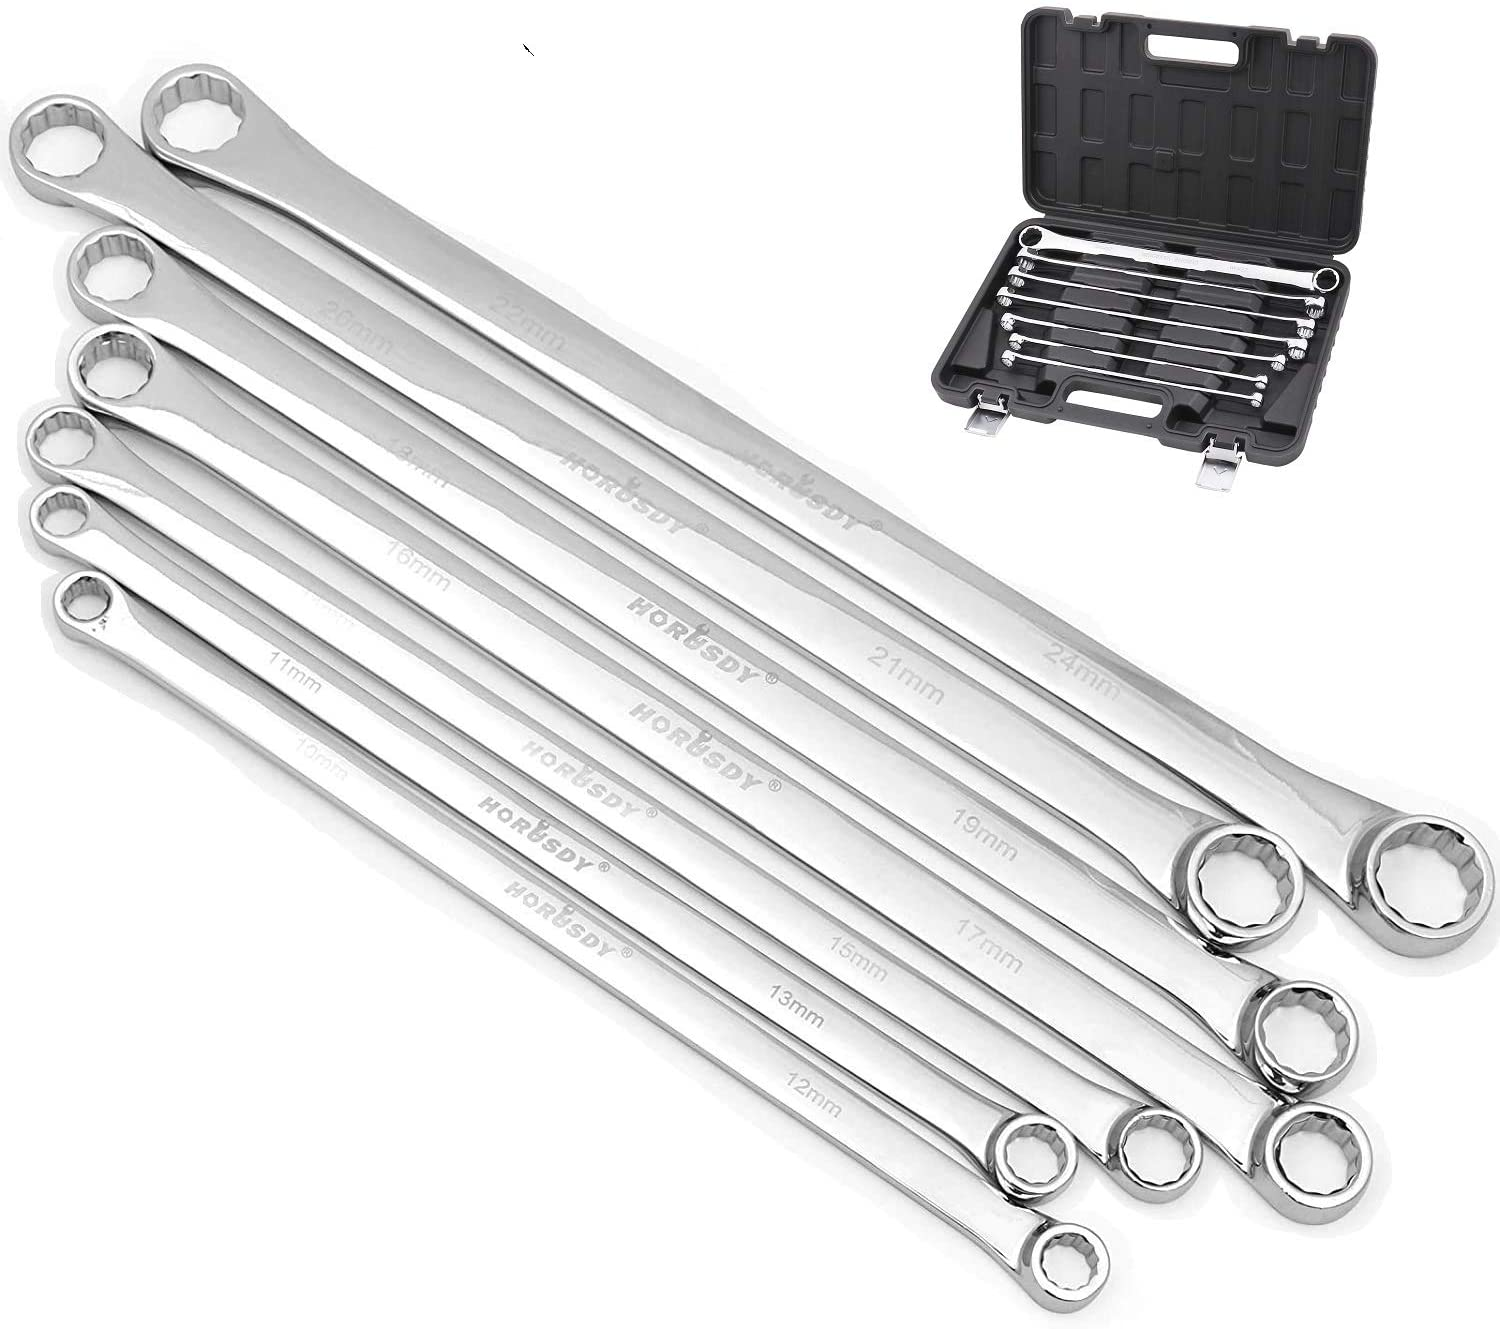 BULLTOOLS Flex-Head Extra Long Ratcheting Wrenches Double Box End Chrome Vanadium Steel 72-Tooth Wrench with Metric 17 mm x 19 mm